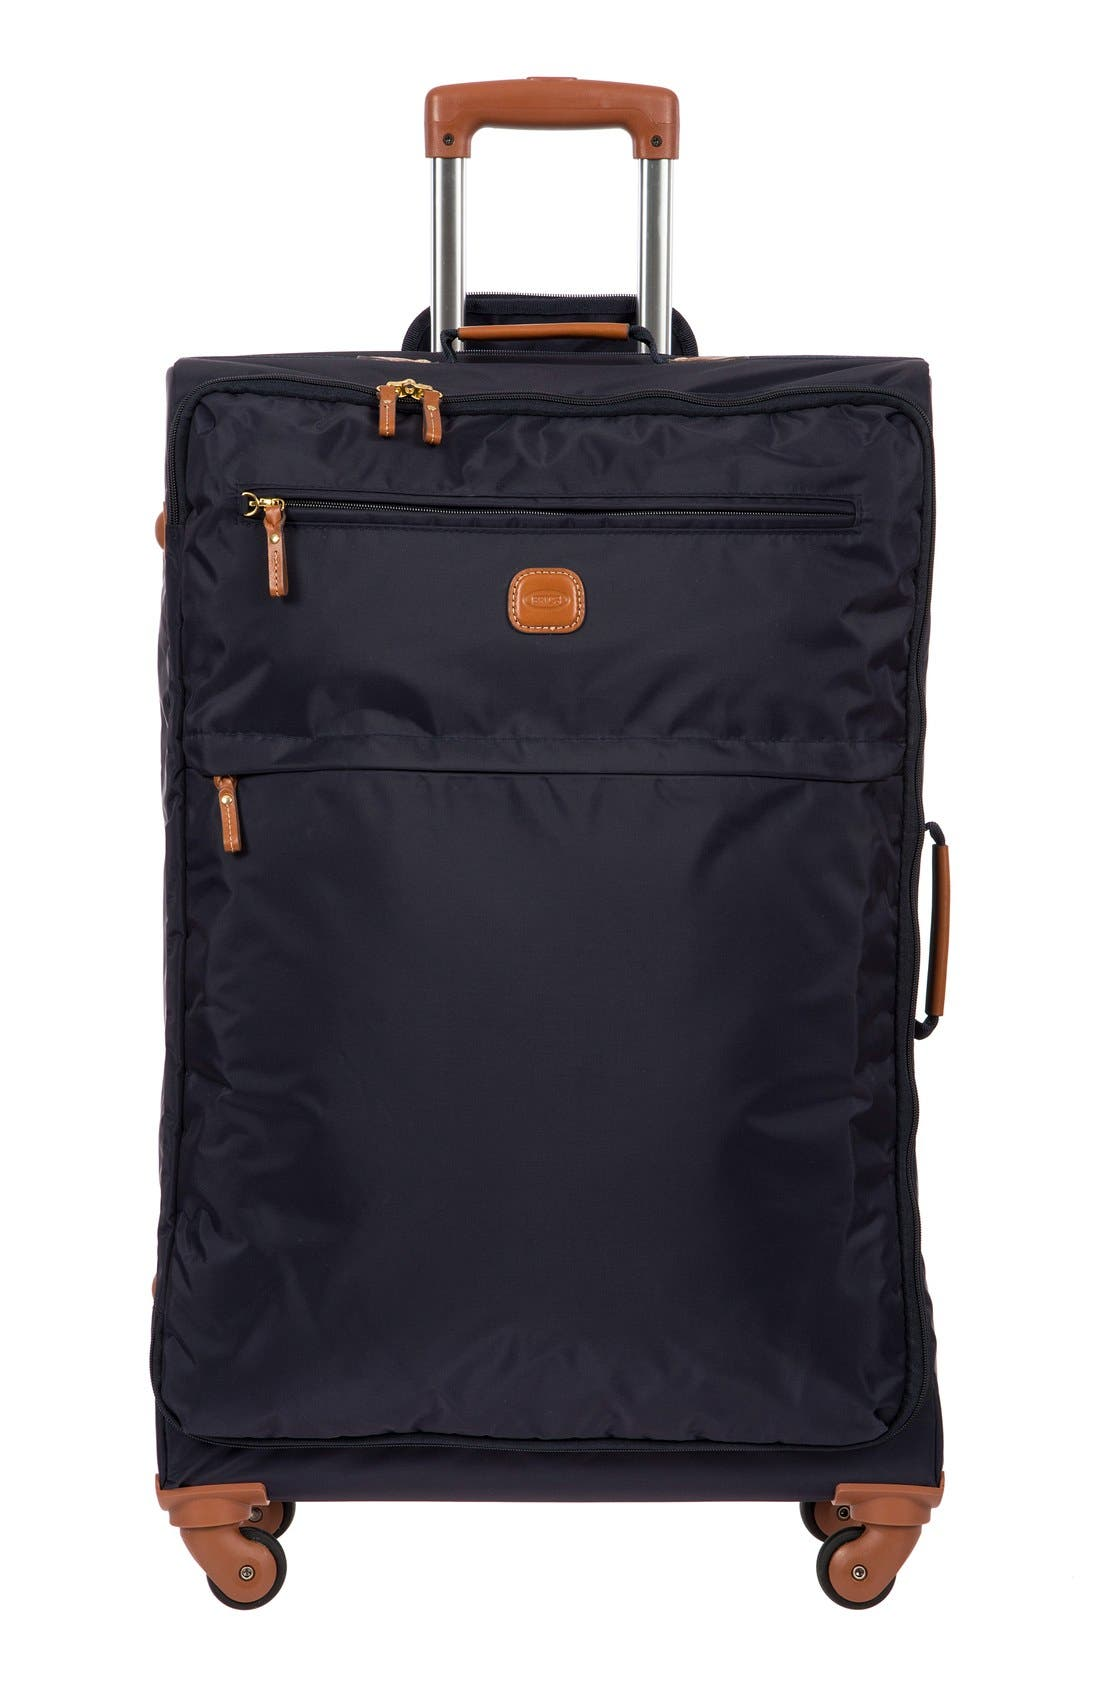 BRIC'S X-Bag 30 Inch Spinner Suitcase